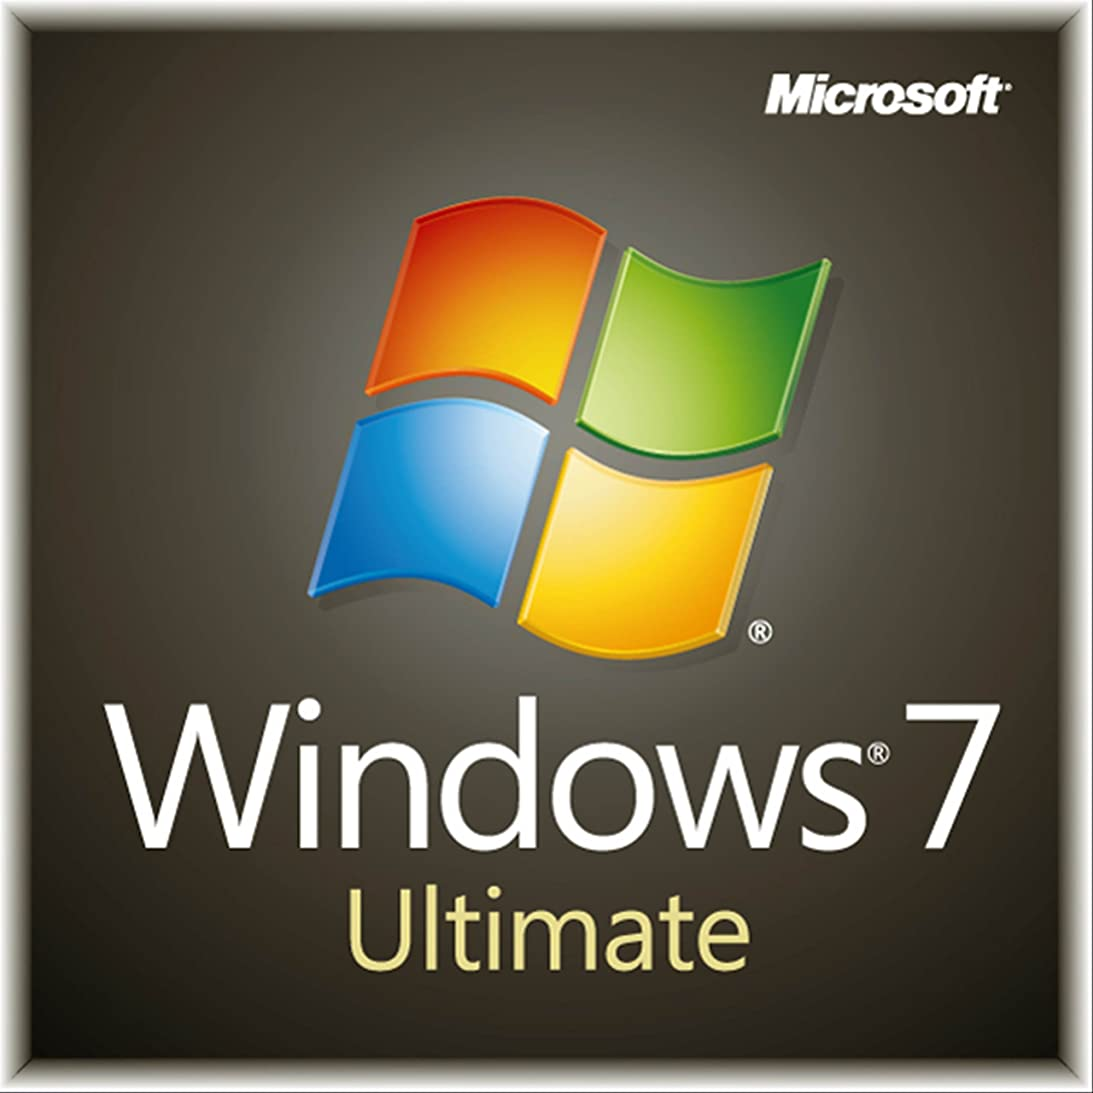 精緻化常習的急いで【旧商品】Microsoft Windows7 Ultimate 64bit  Service Pack 1 日本語 DSP版 DVD 【LANボードセット品】